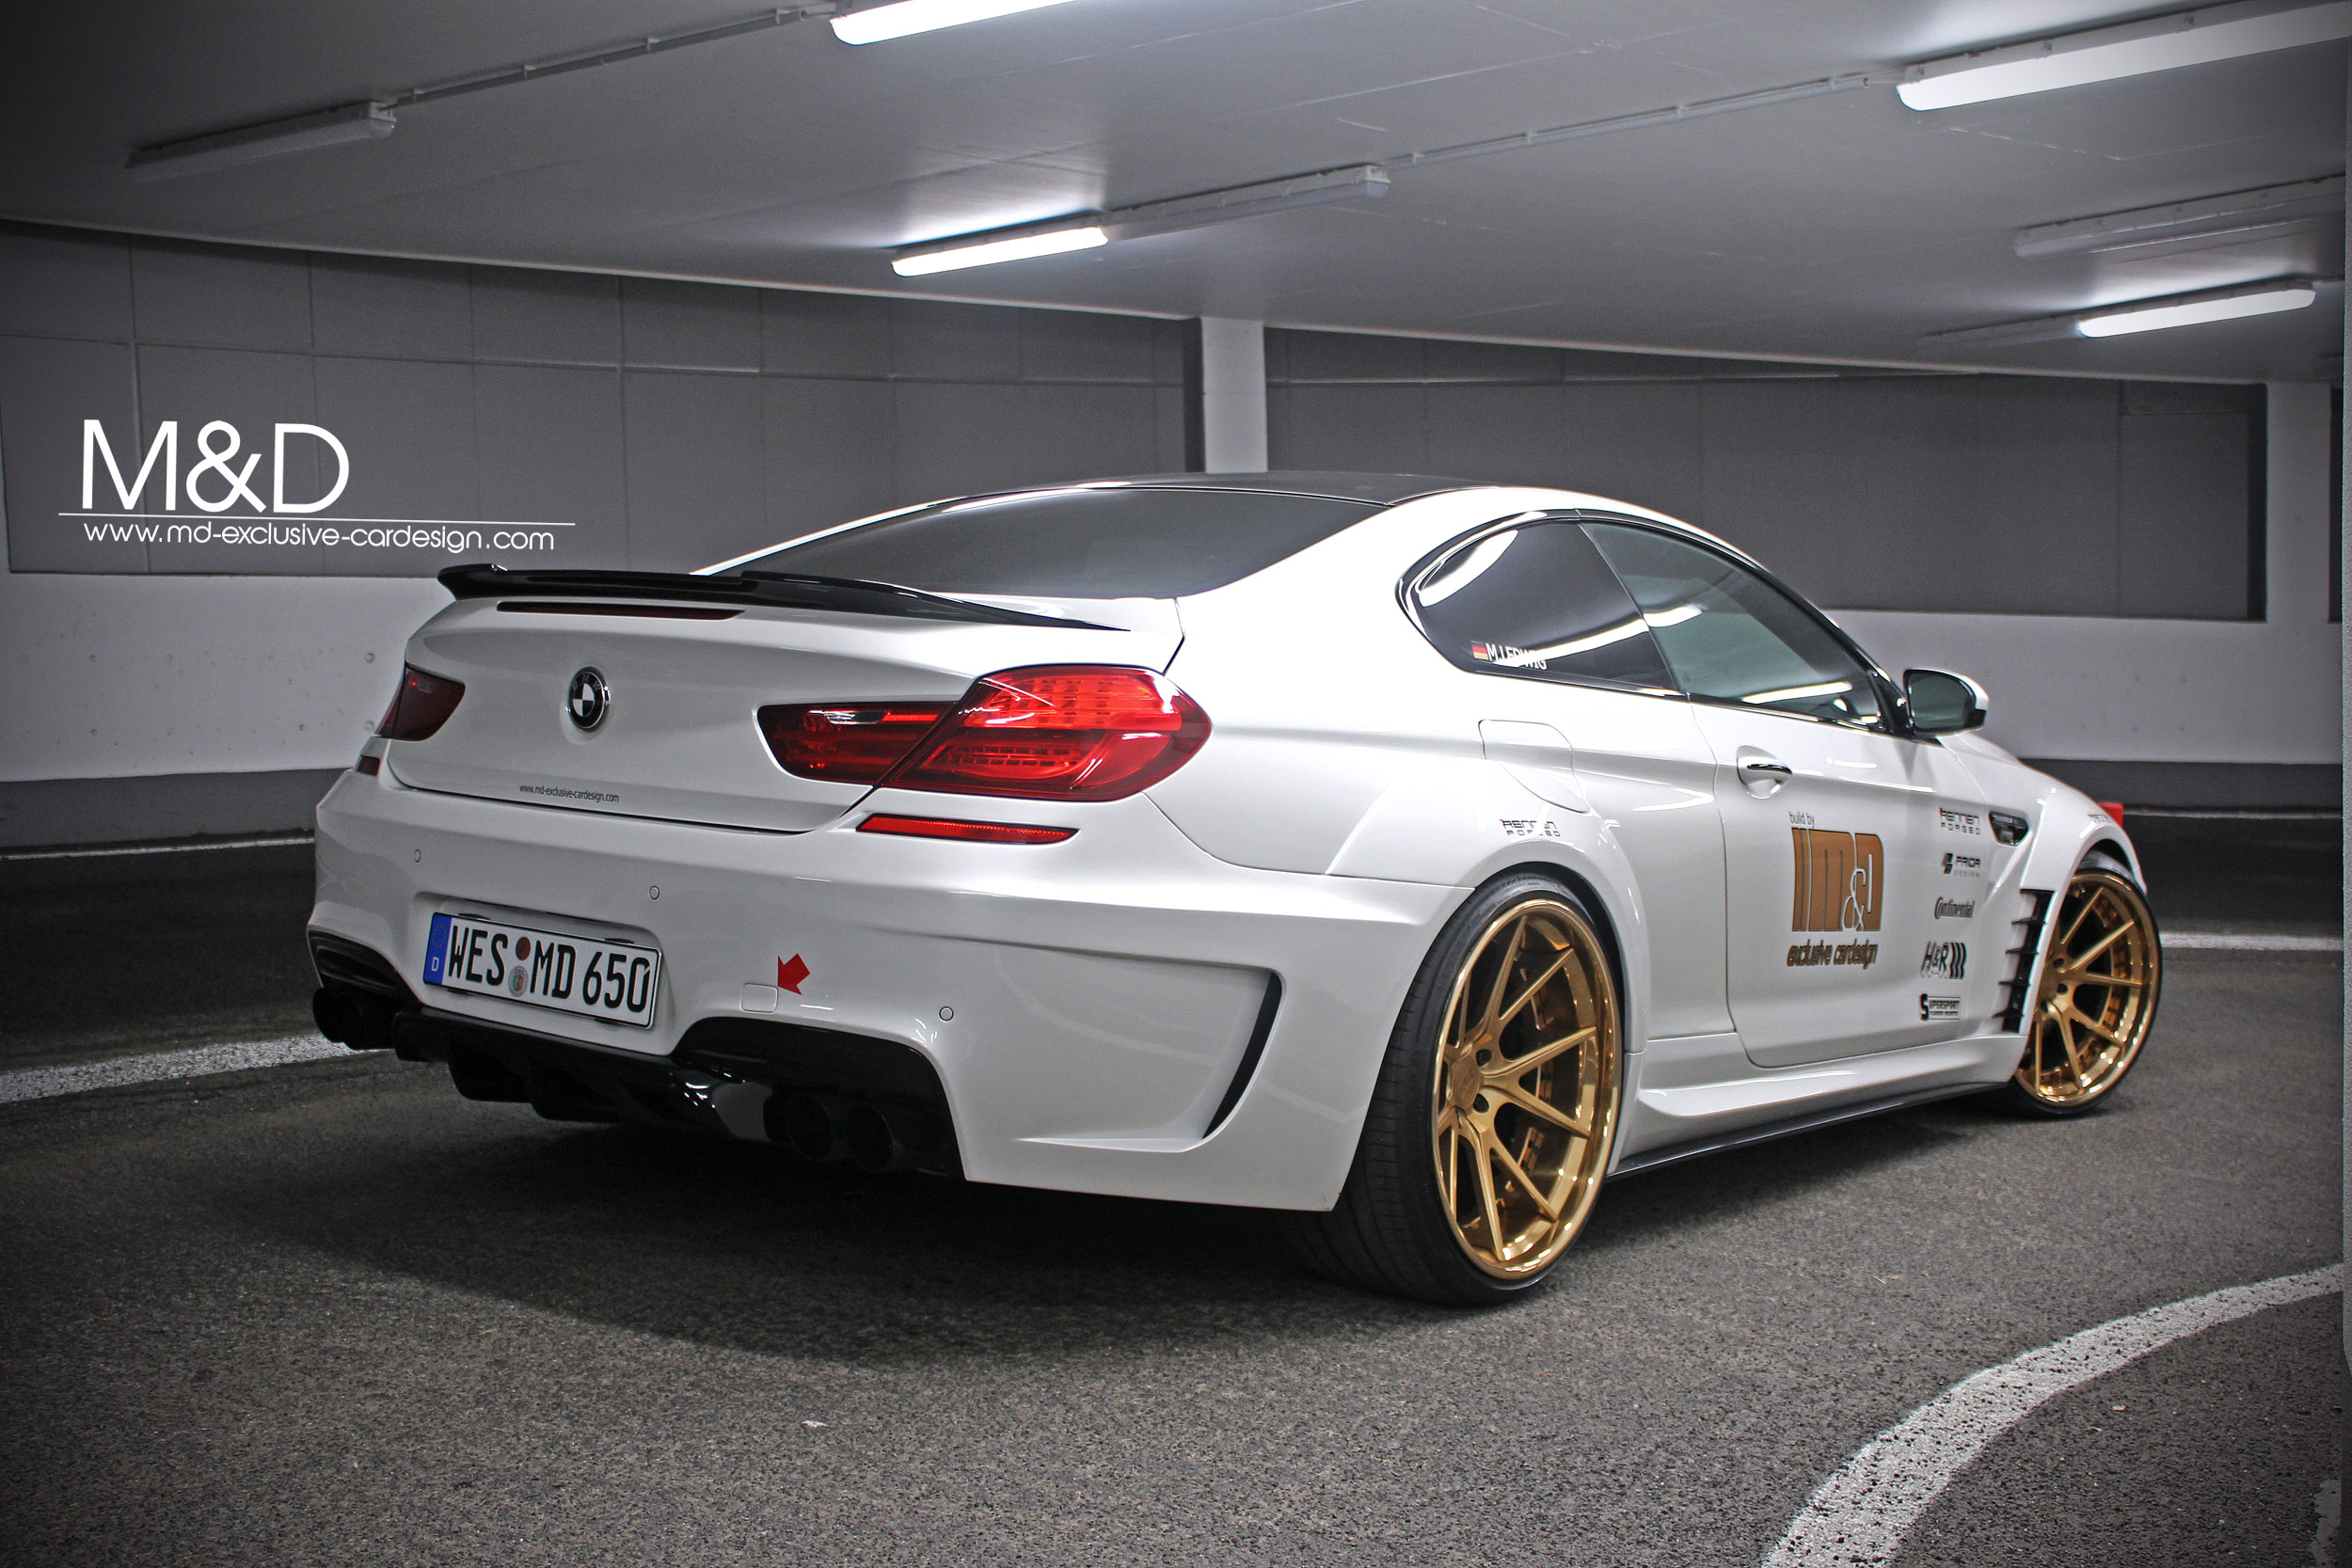 bmw-650i-coupé-pd6xx-f13-md-exclusive-cardesign-016